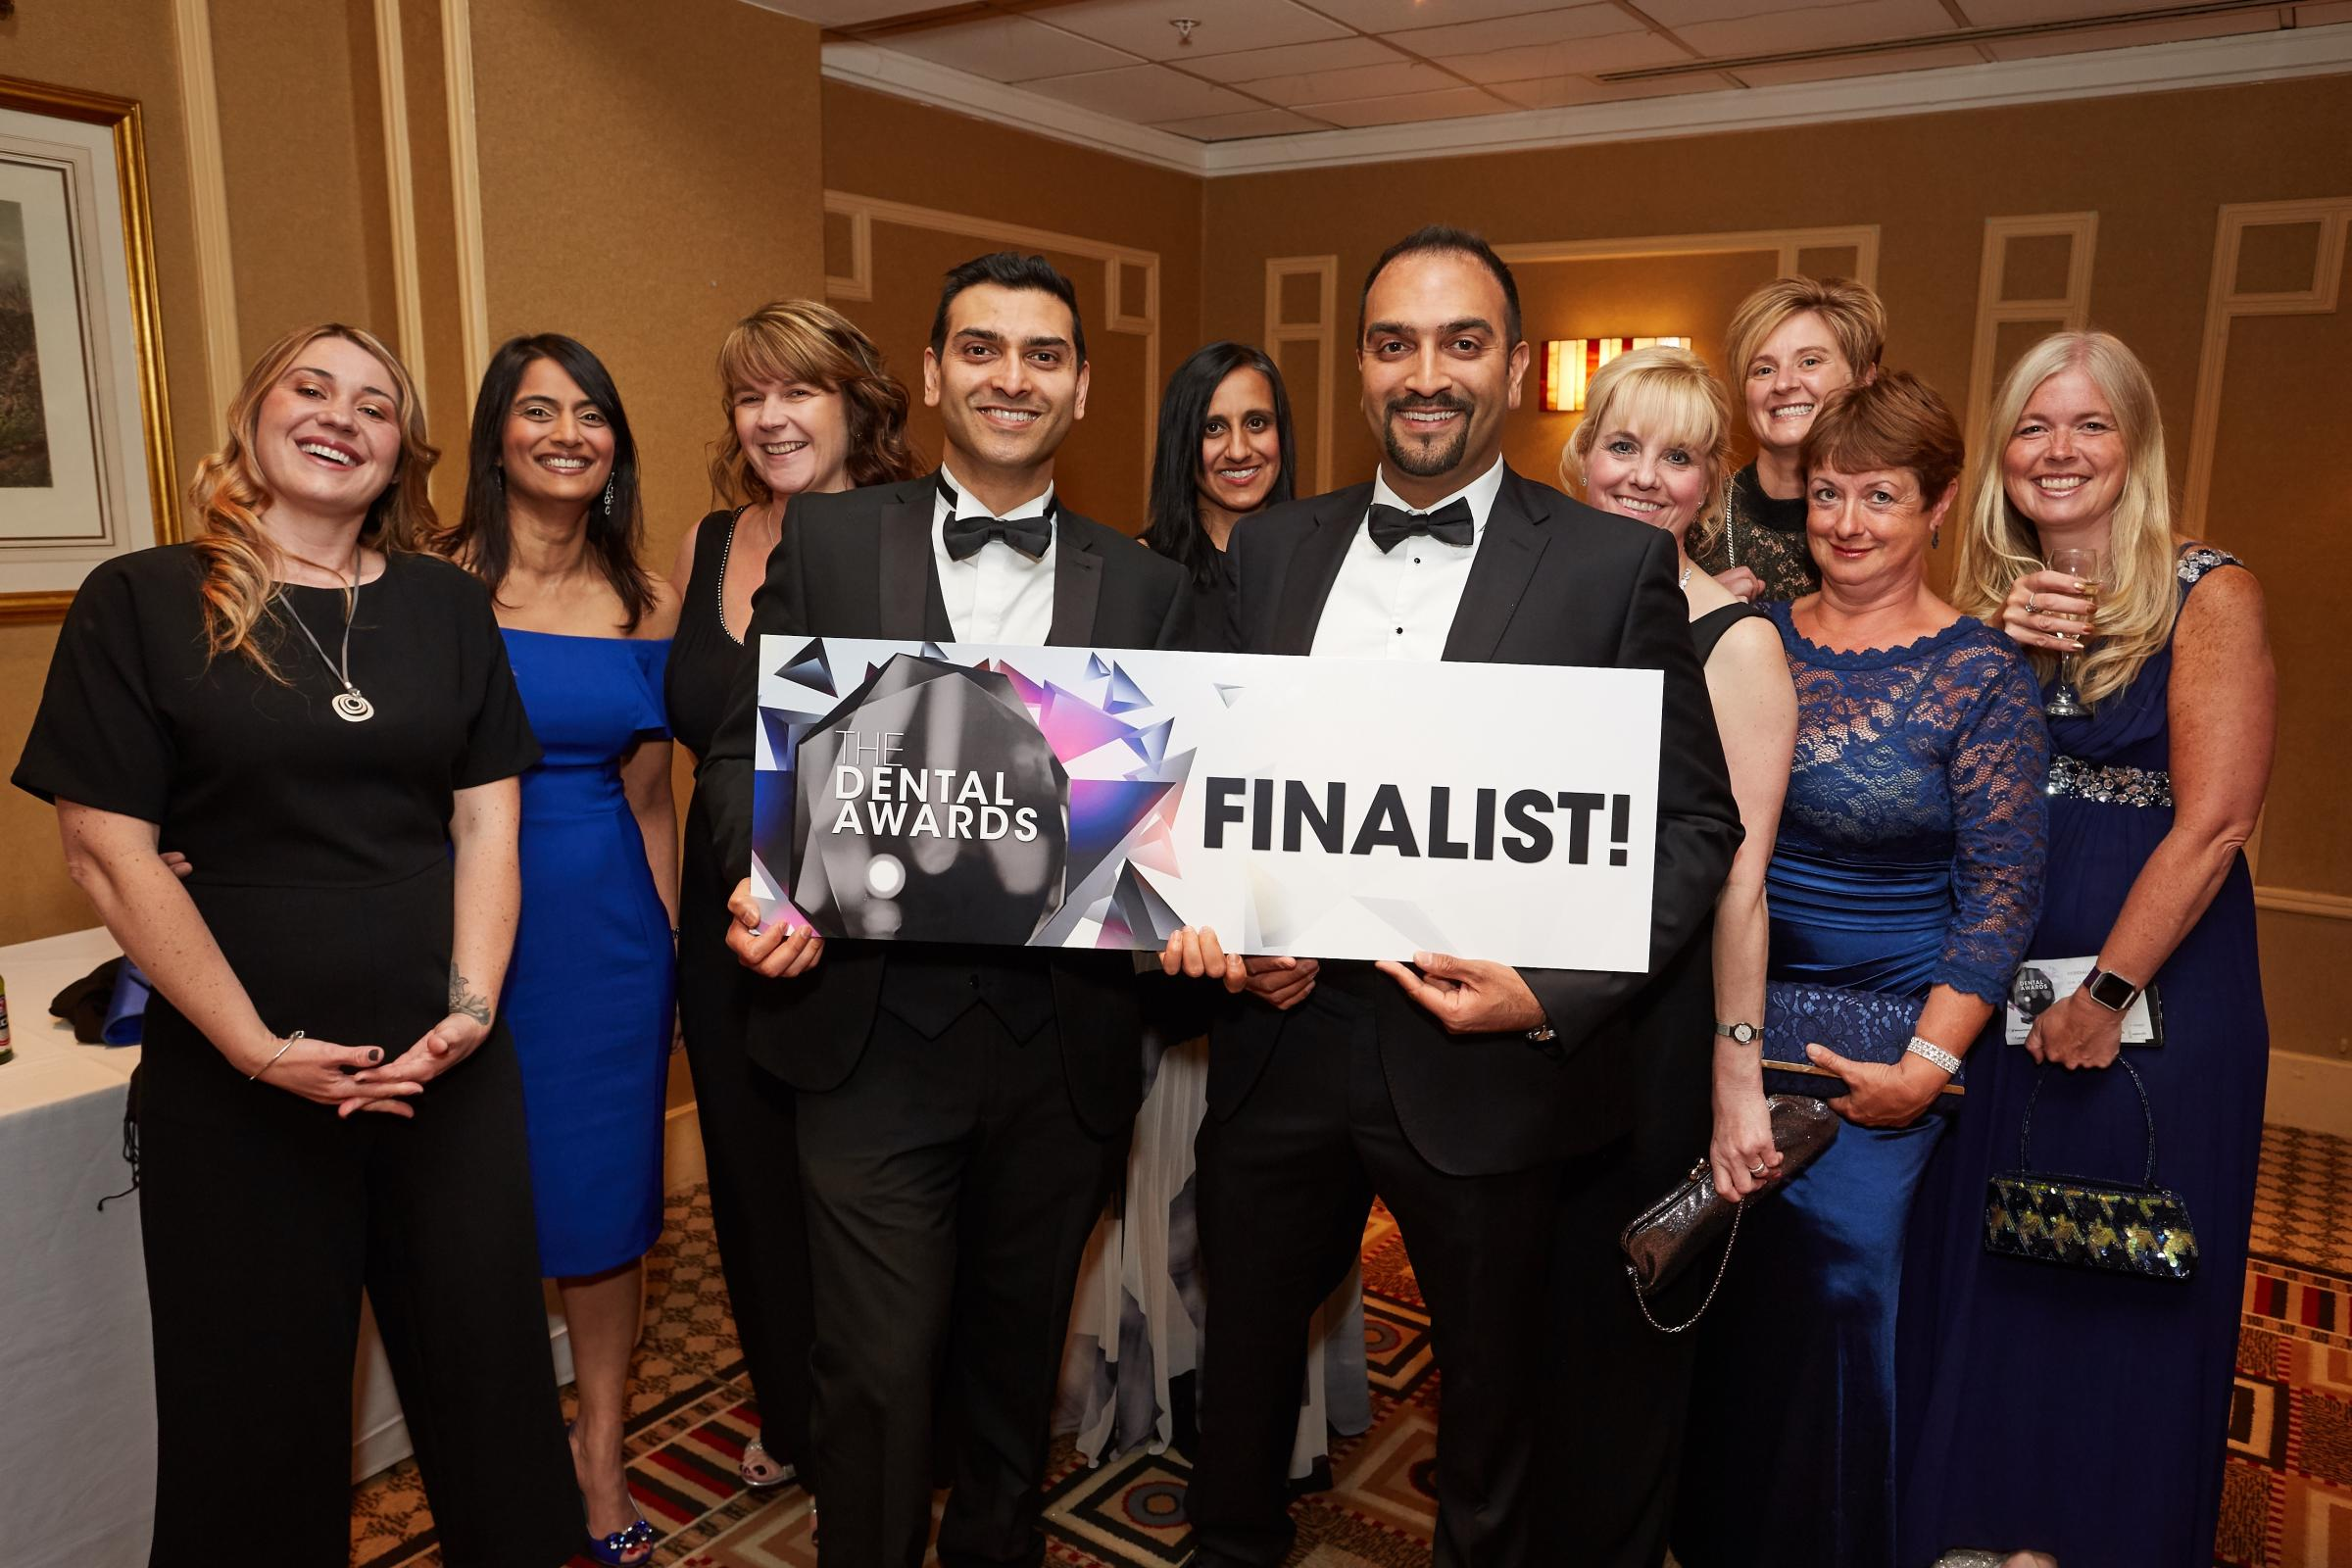 Staff at New Road Dental Practice at the 2018 Dental Awards ceremony. Photo by Teofil Rewers